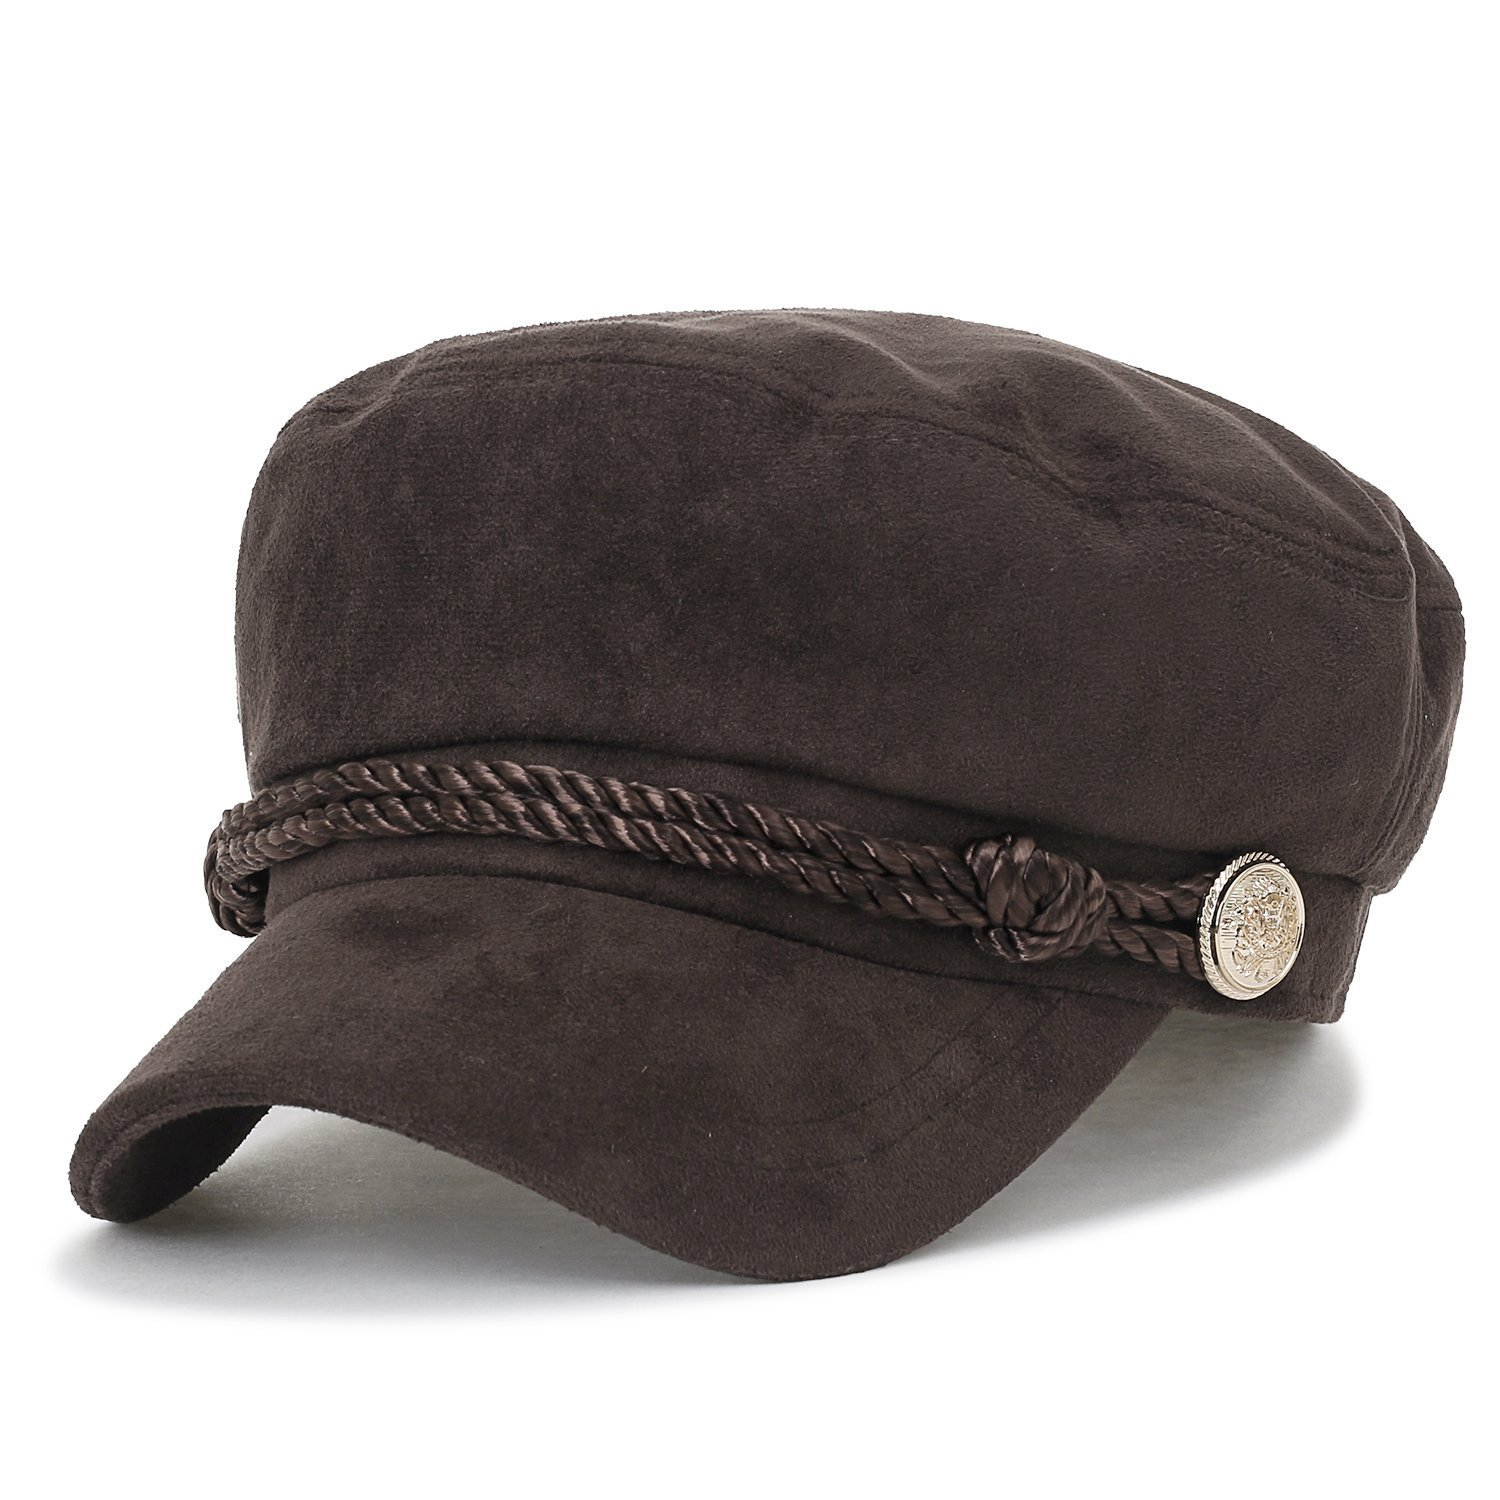 ililily Solid Color Suede Like Flat Top Newsboy Cap Duck Bill Flat Hunting Hat, Dark Brown